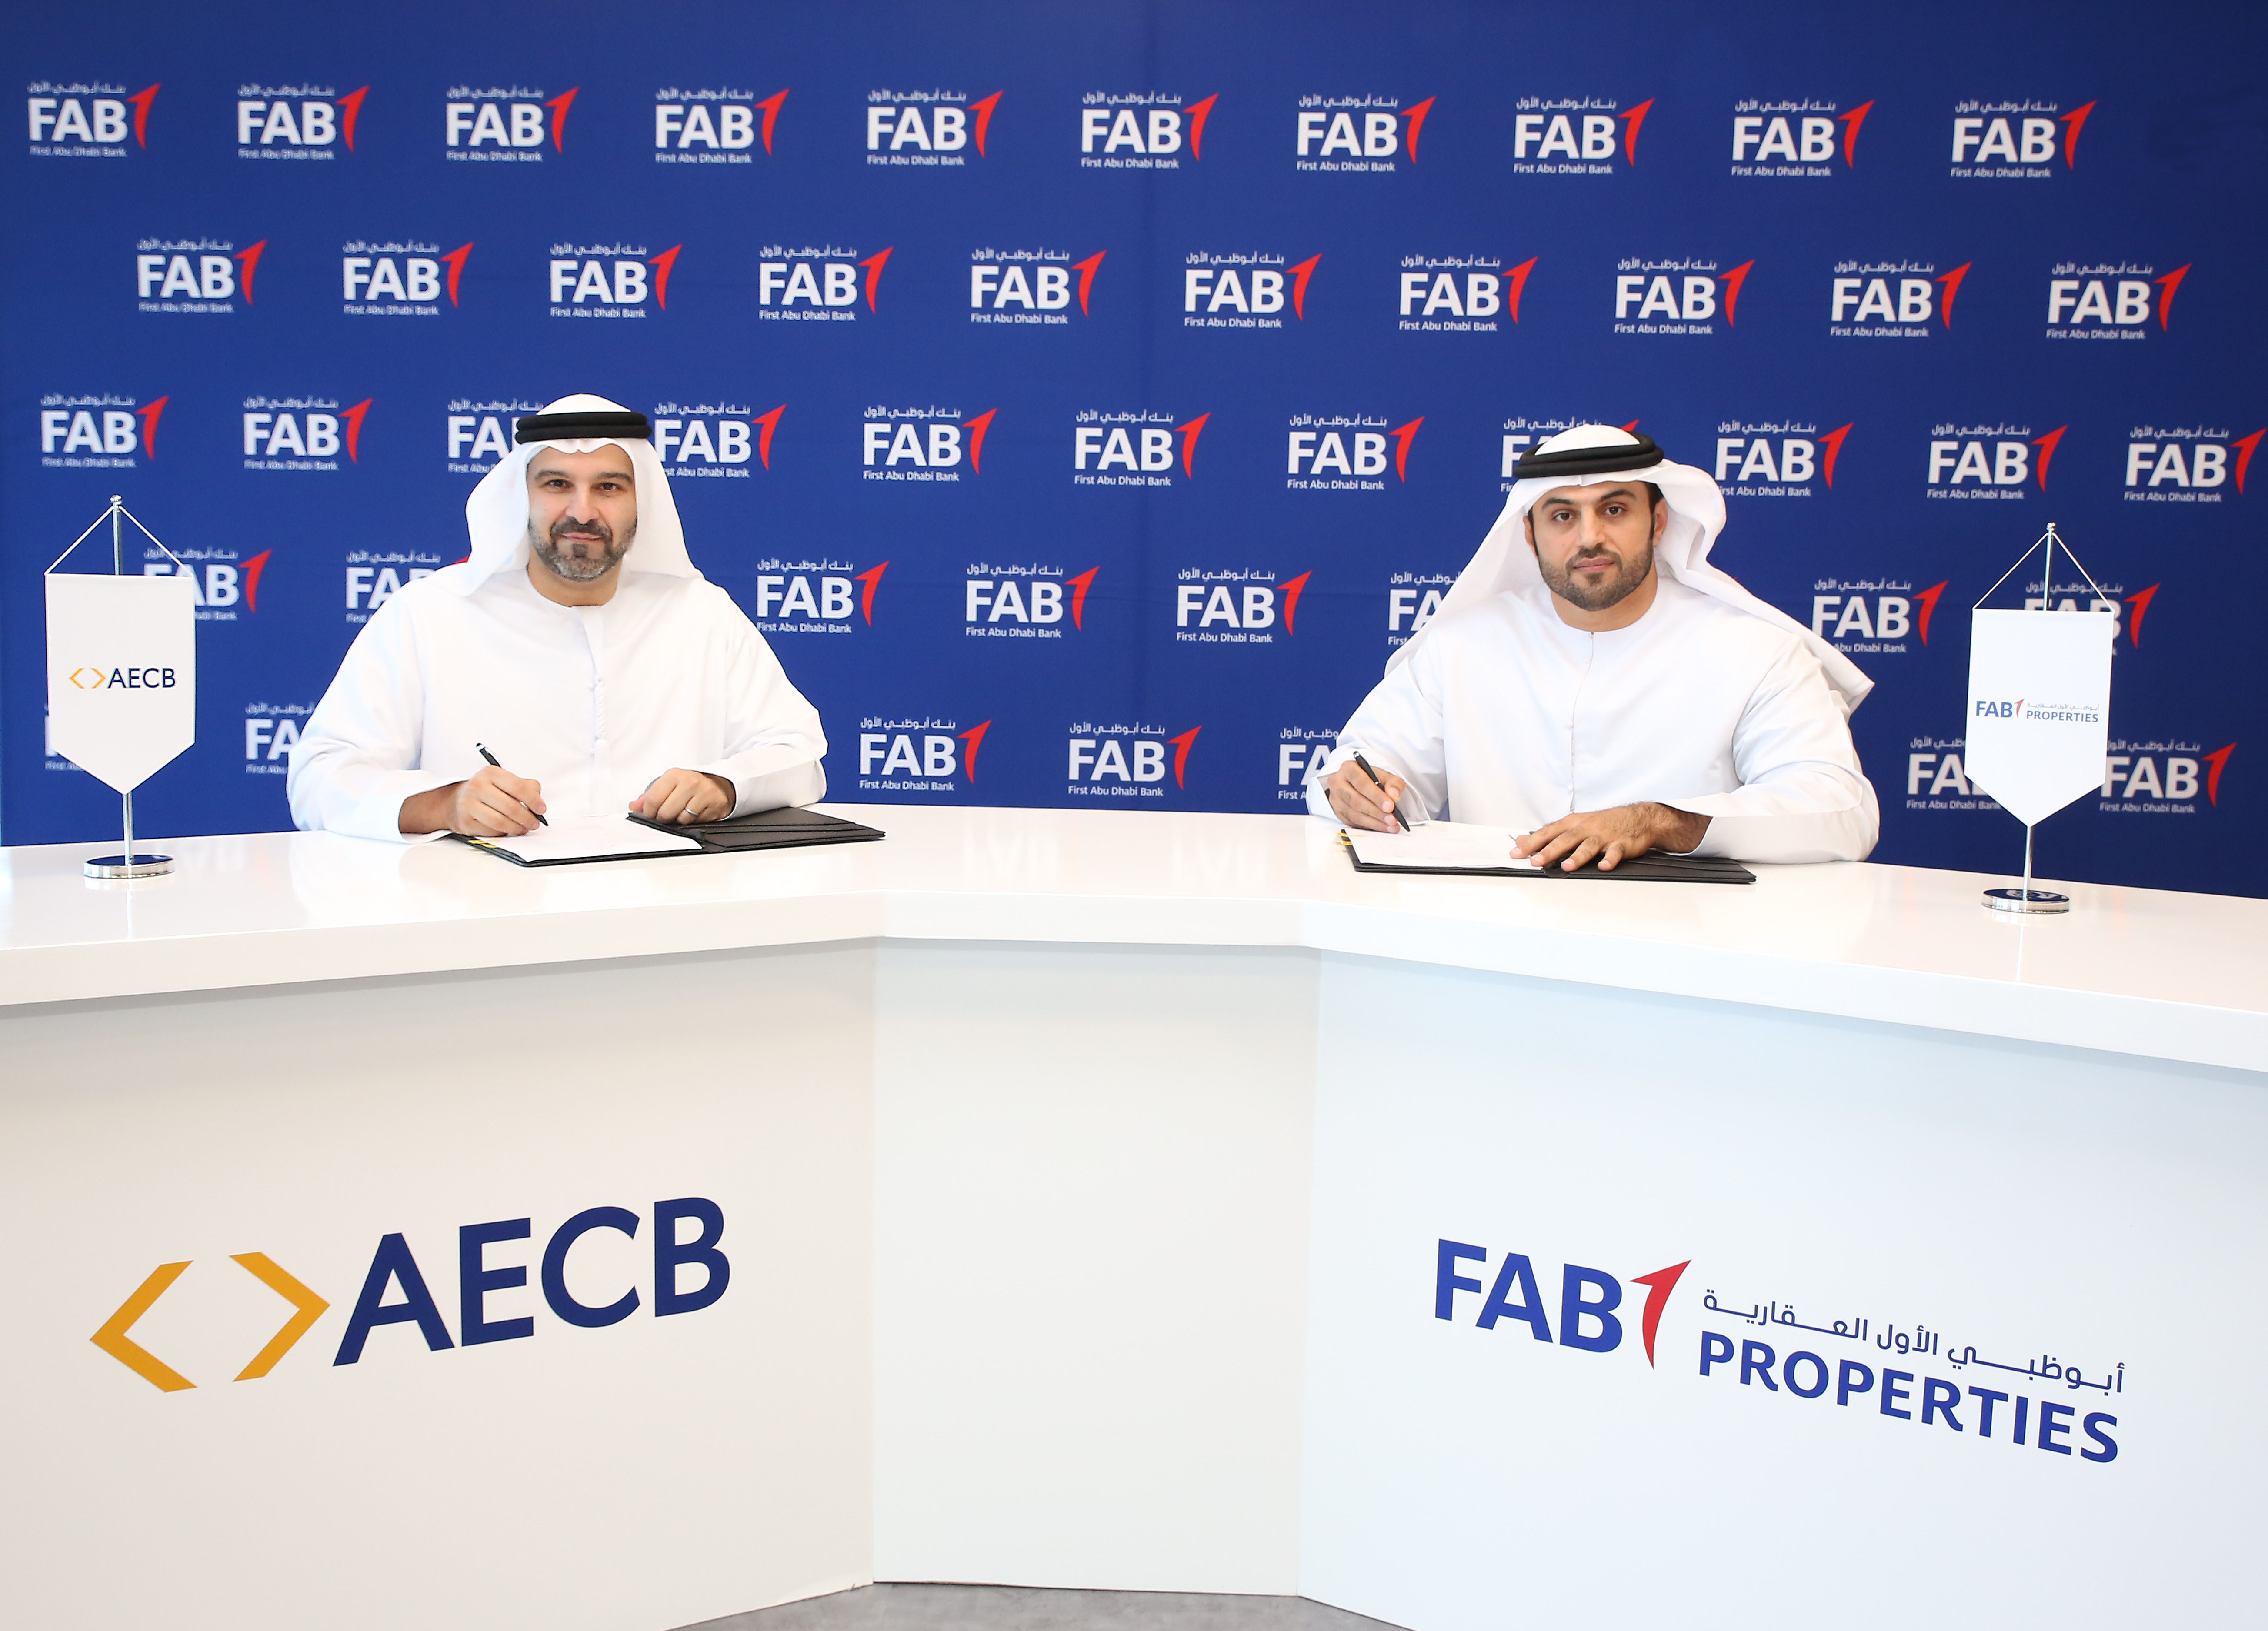 FAB Properties first to use Credit Bureau data to assess tenants' ability to pay rent on time